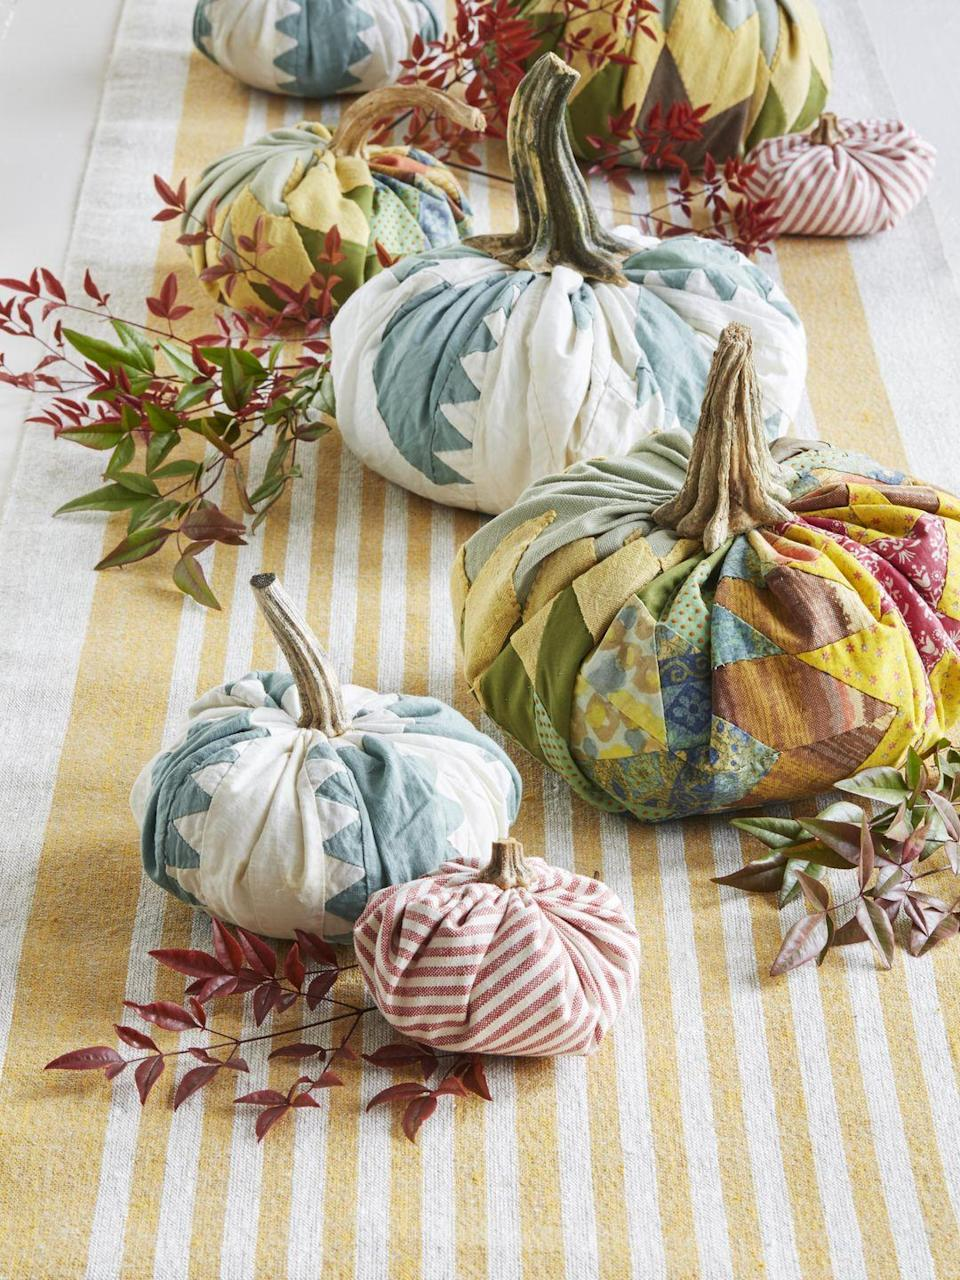 <p>Craft your own personal pumpkin patch using old quilts and fabric scraps. To make, start with a round piece of fabric and a ball of batting (about the size you want your finished pumpkin to be). Gather the fabric up around the batting and hot glue it together in the center. Collect dried stems, or purchase faux stems, and attach with hot glue for a realistic touch. Line the middle of a long farmhouse table with a runner, then pile on your creations and other seasonal greenery. These would be an adorable accent to a mantel or buffet as well.</p>